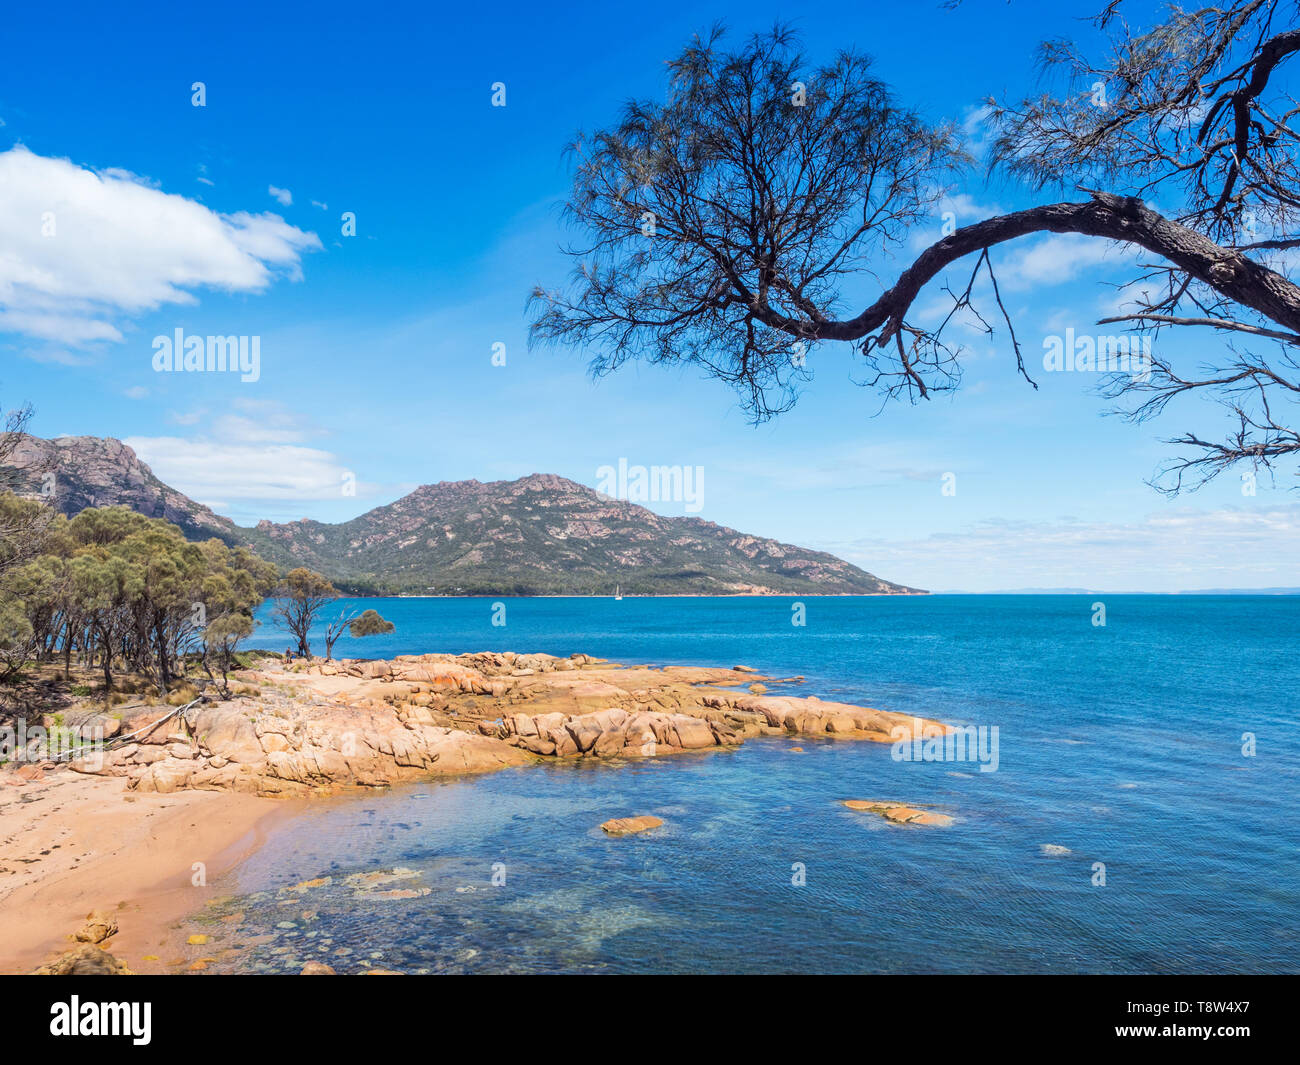 A beach at Coles Bay, adjacent to Freycinet National Park in Tasmania, Australia. Stock Photo